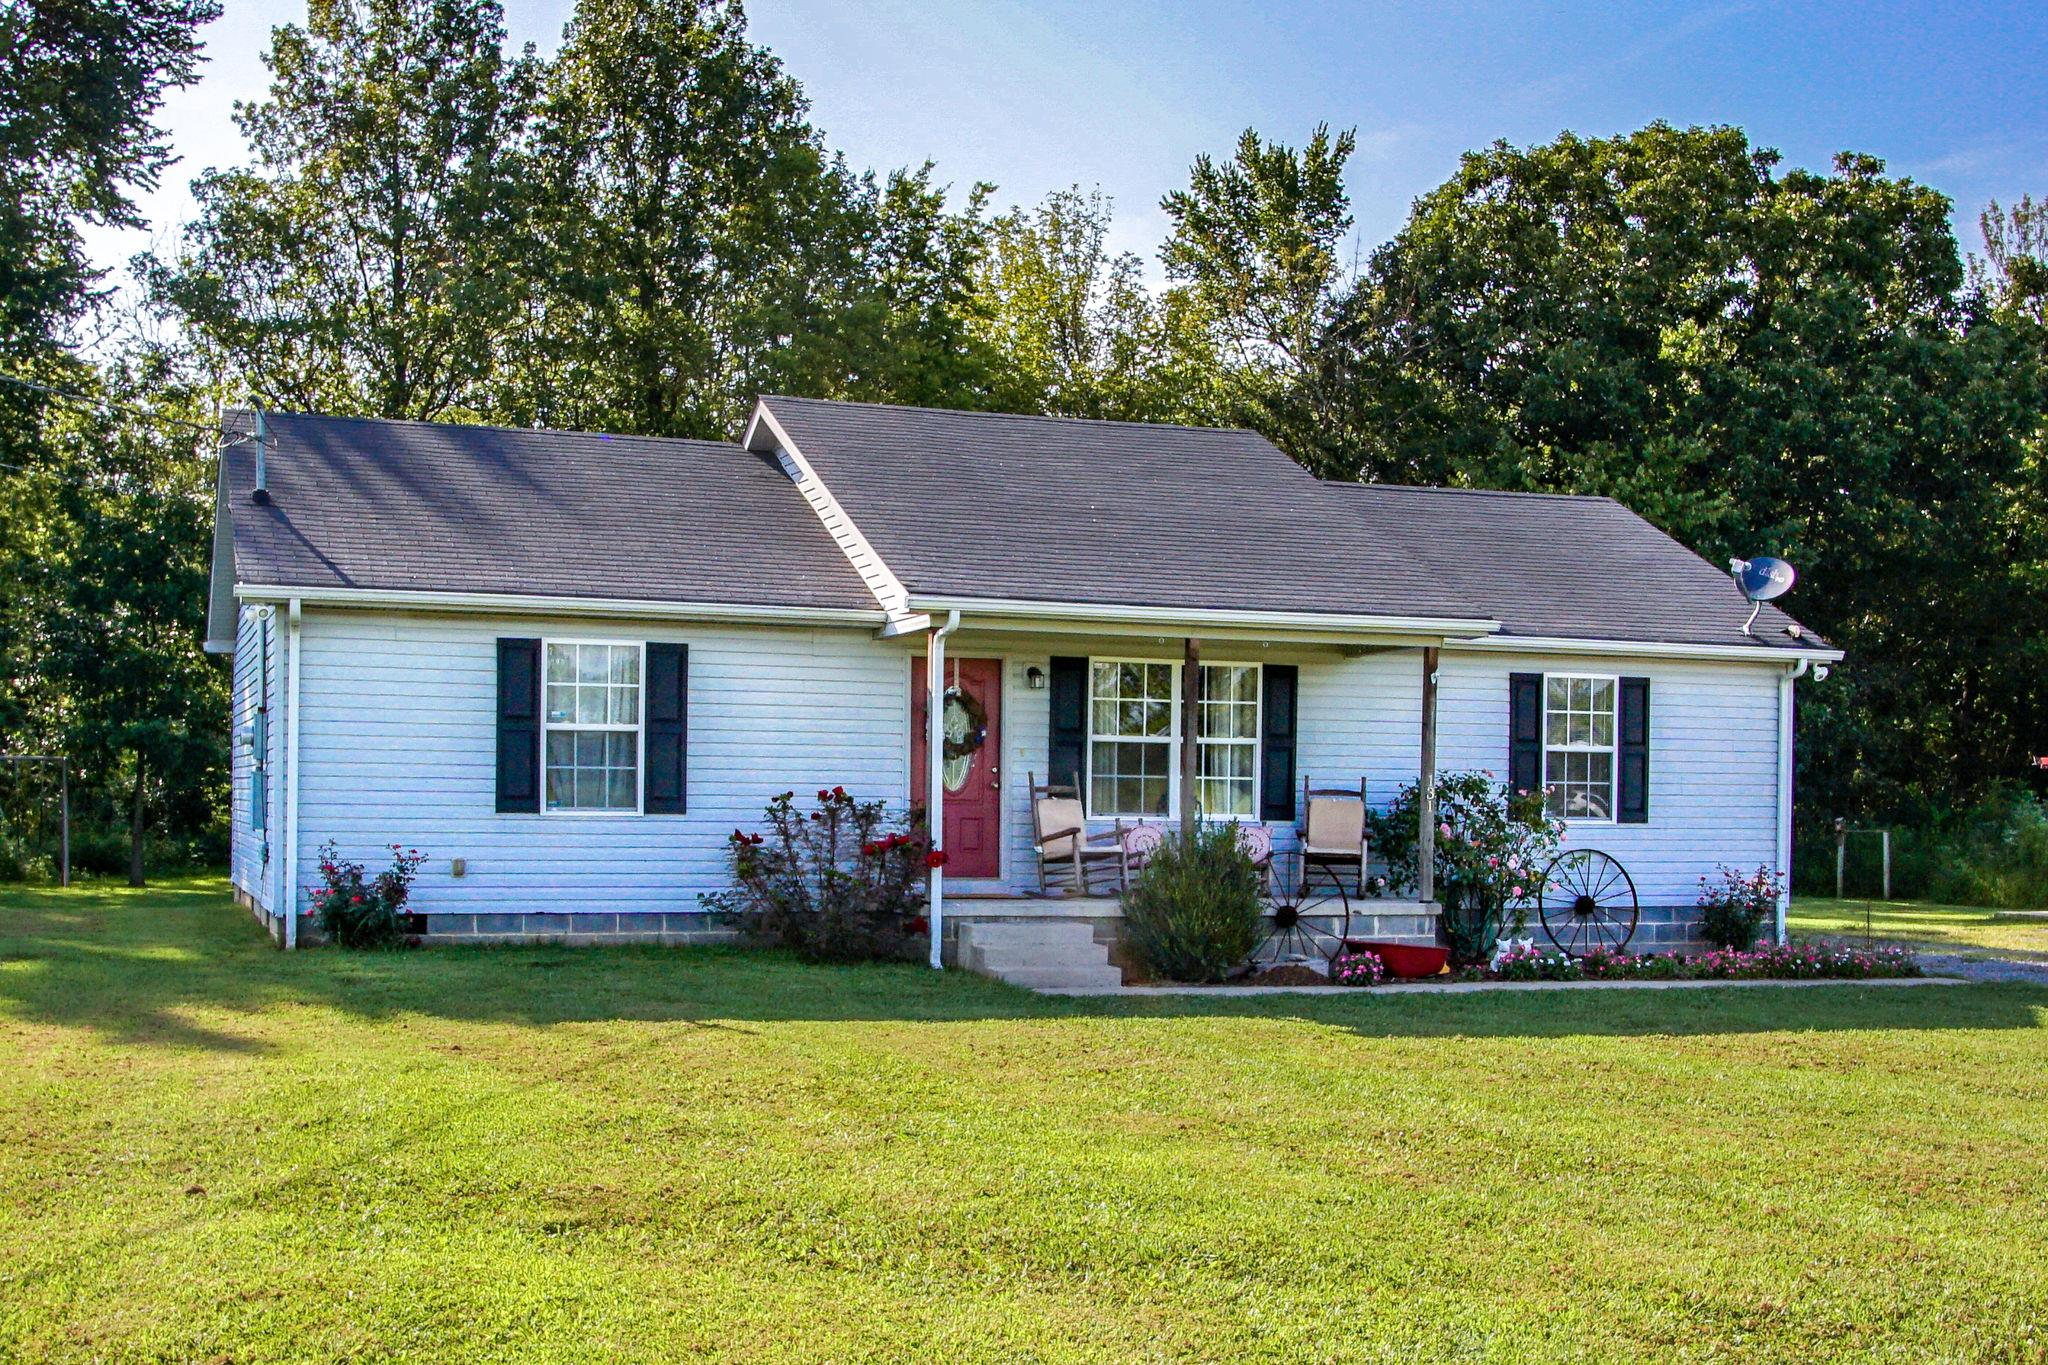 131 Anderson Creek Rd, Bell Buckle, TN 37020 - Bell Buckle, TN real estate listing